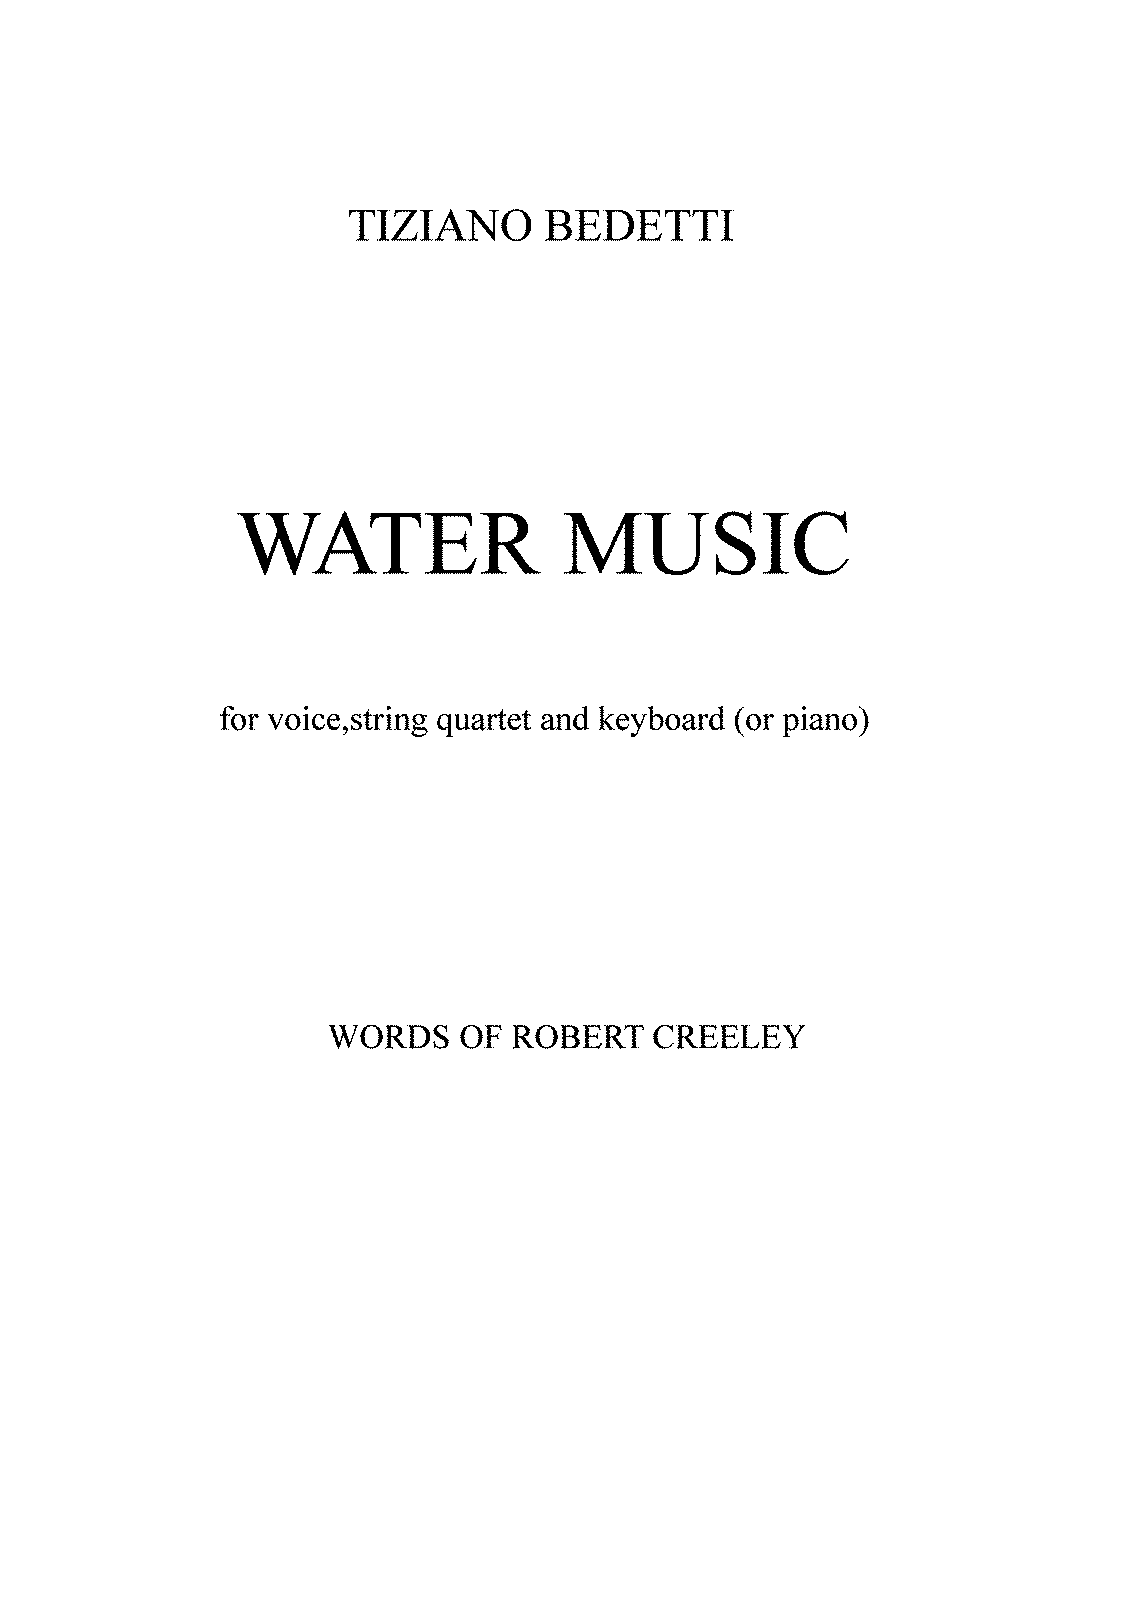 PMLP400394-Bedetti - Water music - full score.pdf